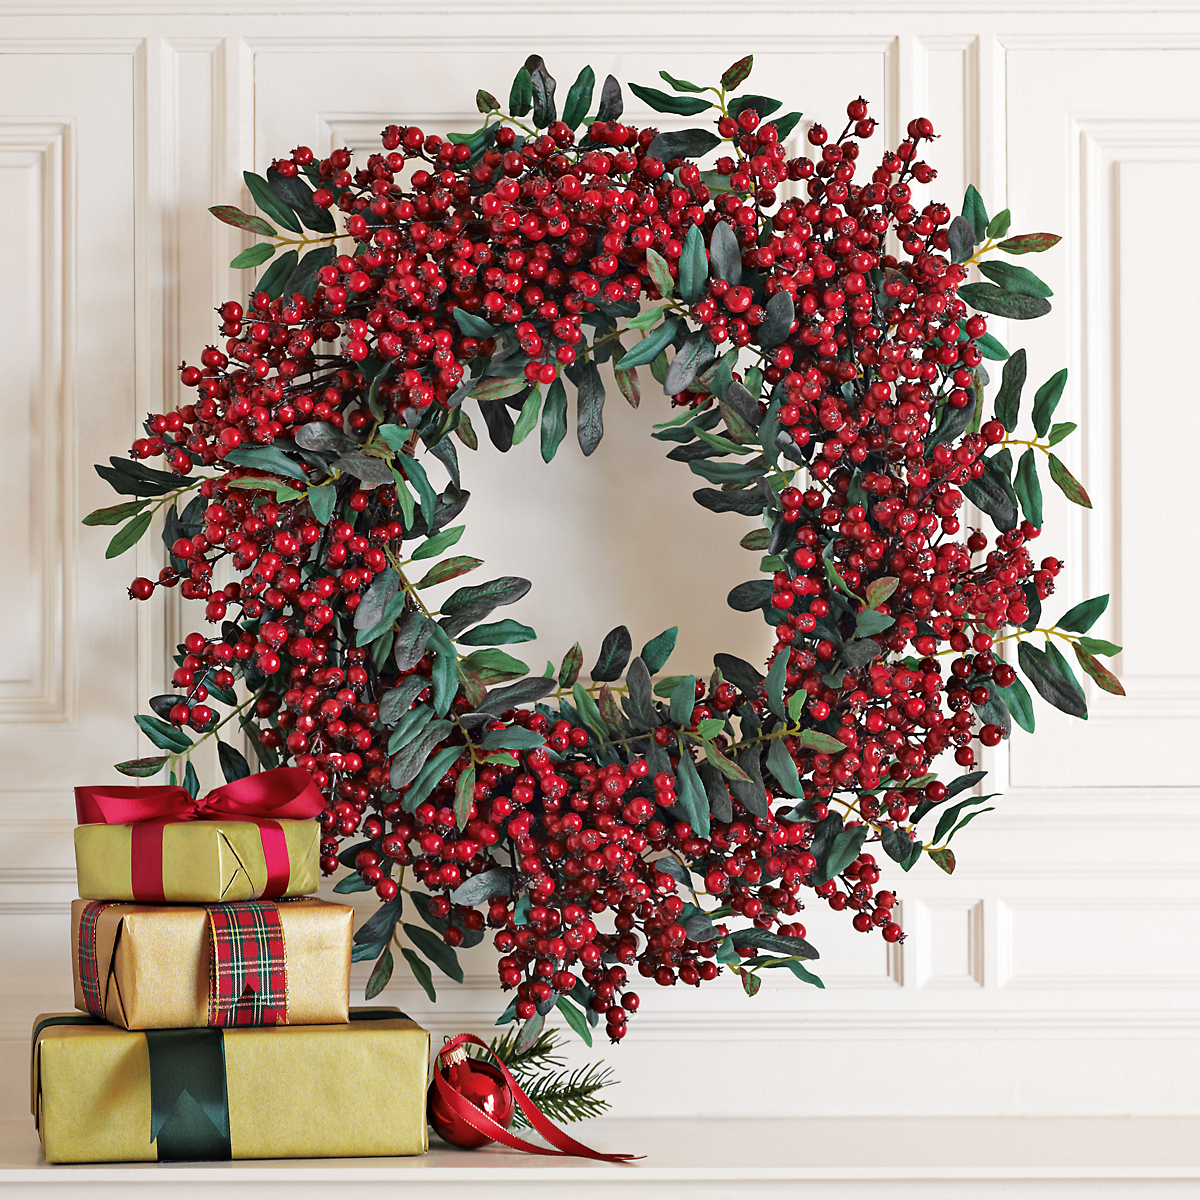 Festive Red Berry Wreath